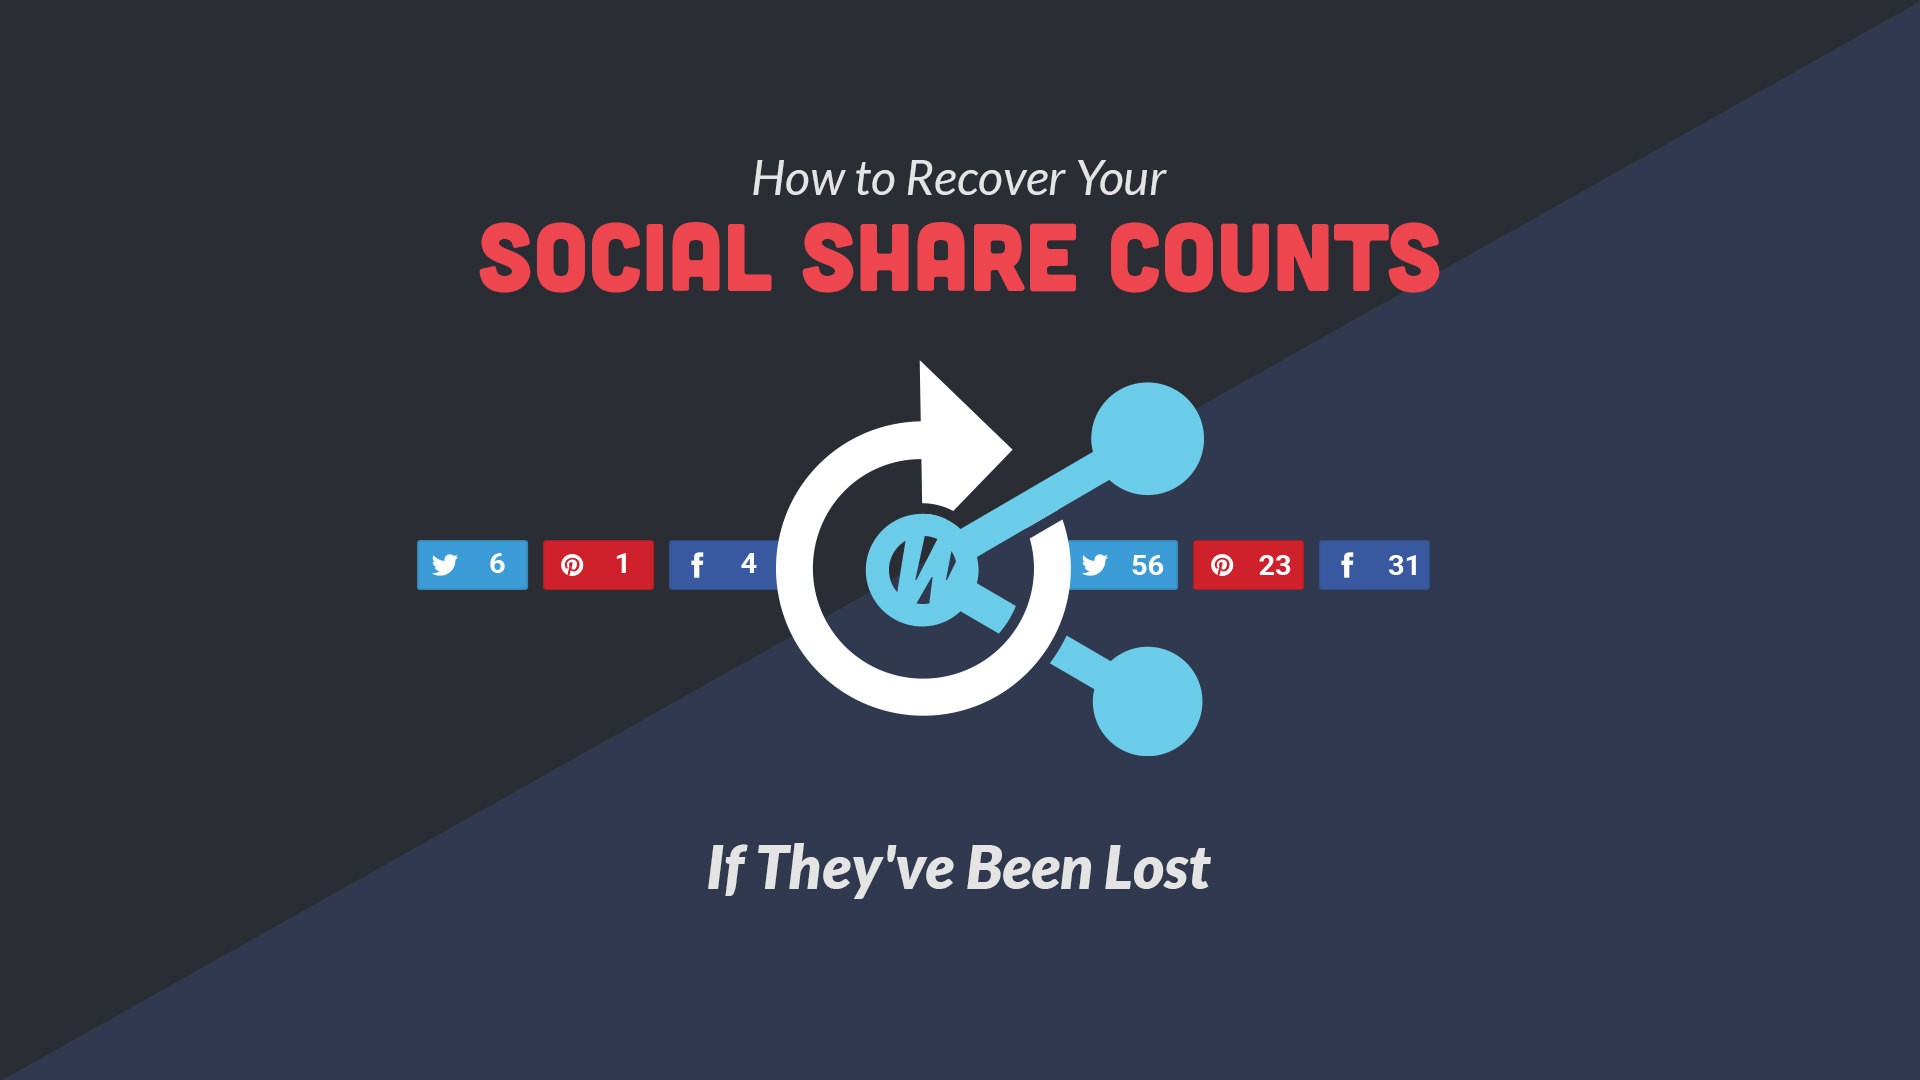 Recover your social share counts